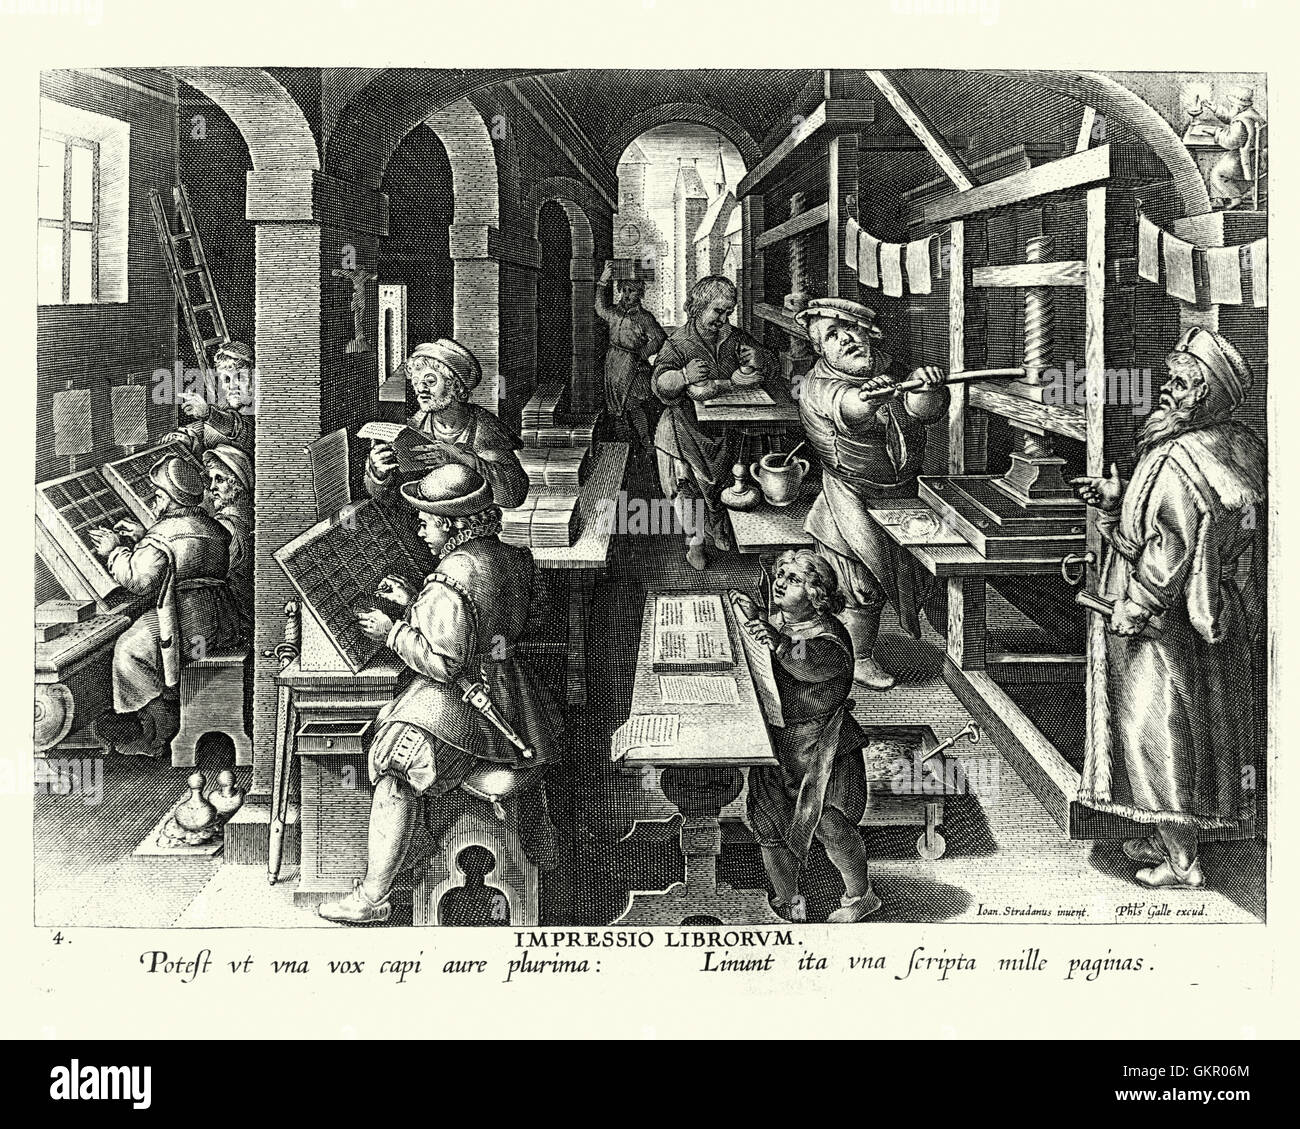 Woodcut of a early English printing office. Printers using a Printing Press and Typesetters at work. - Stock Image